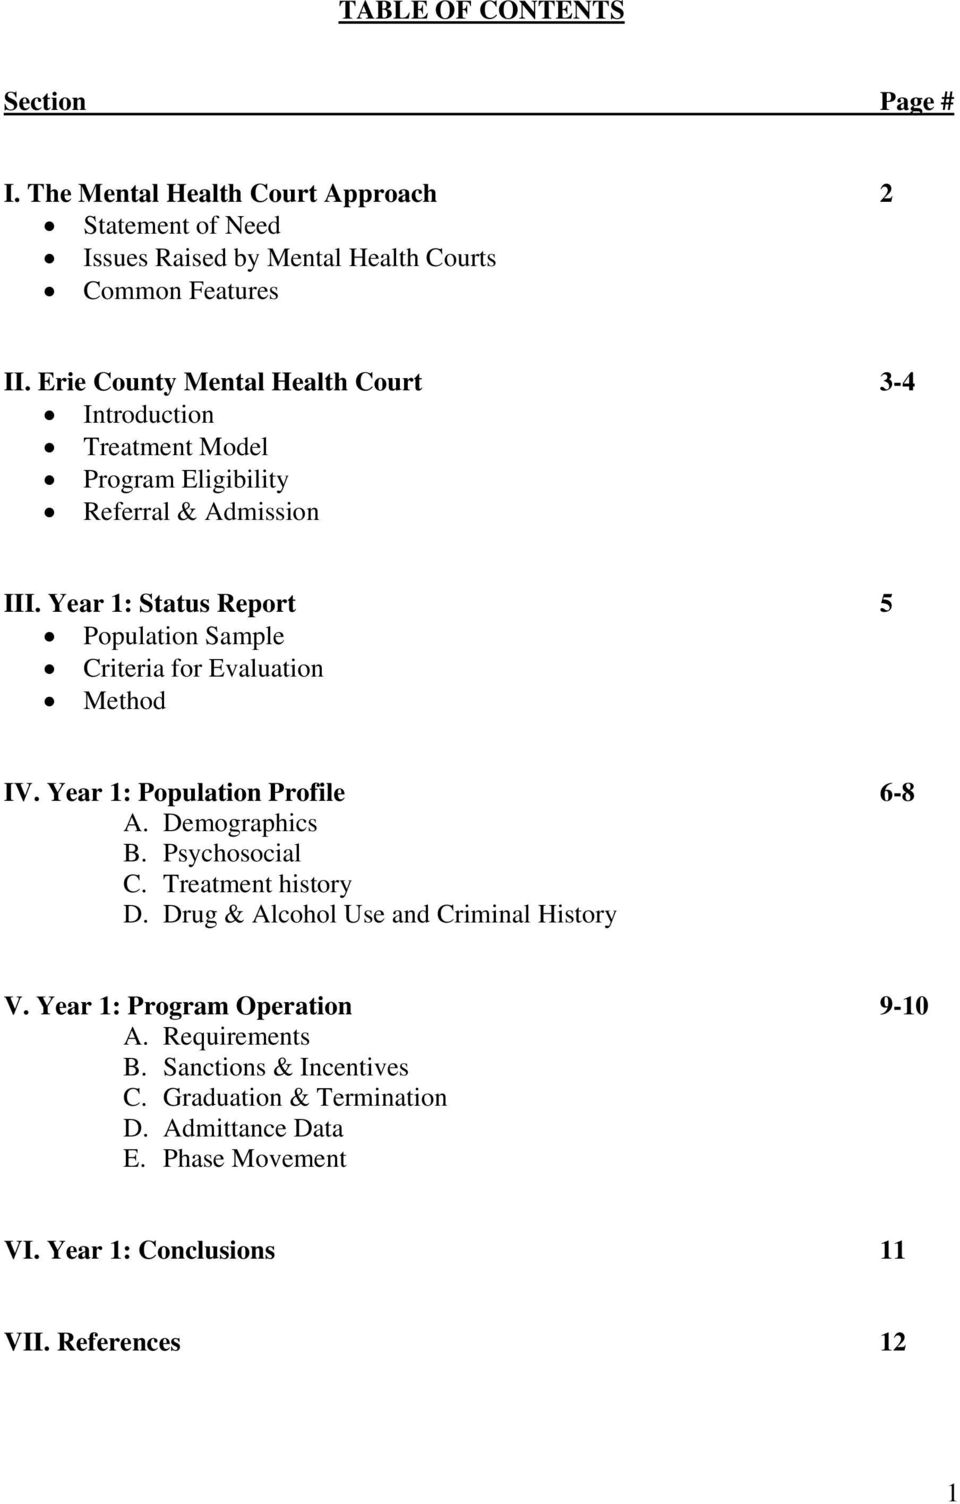 Year 1: Status Report 5 Population Sample Criteria for Evaluation Method IV. Year 1: Population Profile 6-8 A. Demographics B. Psychosocial C. Treatment history D.